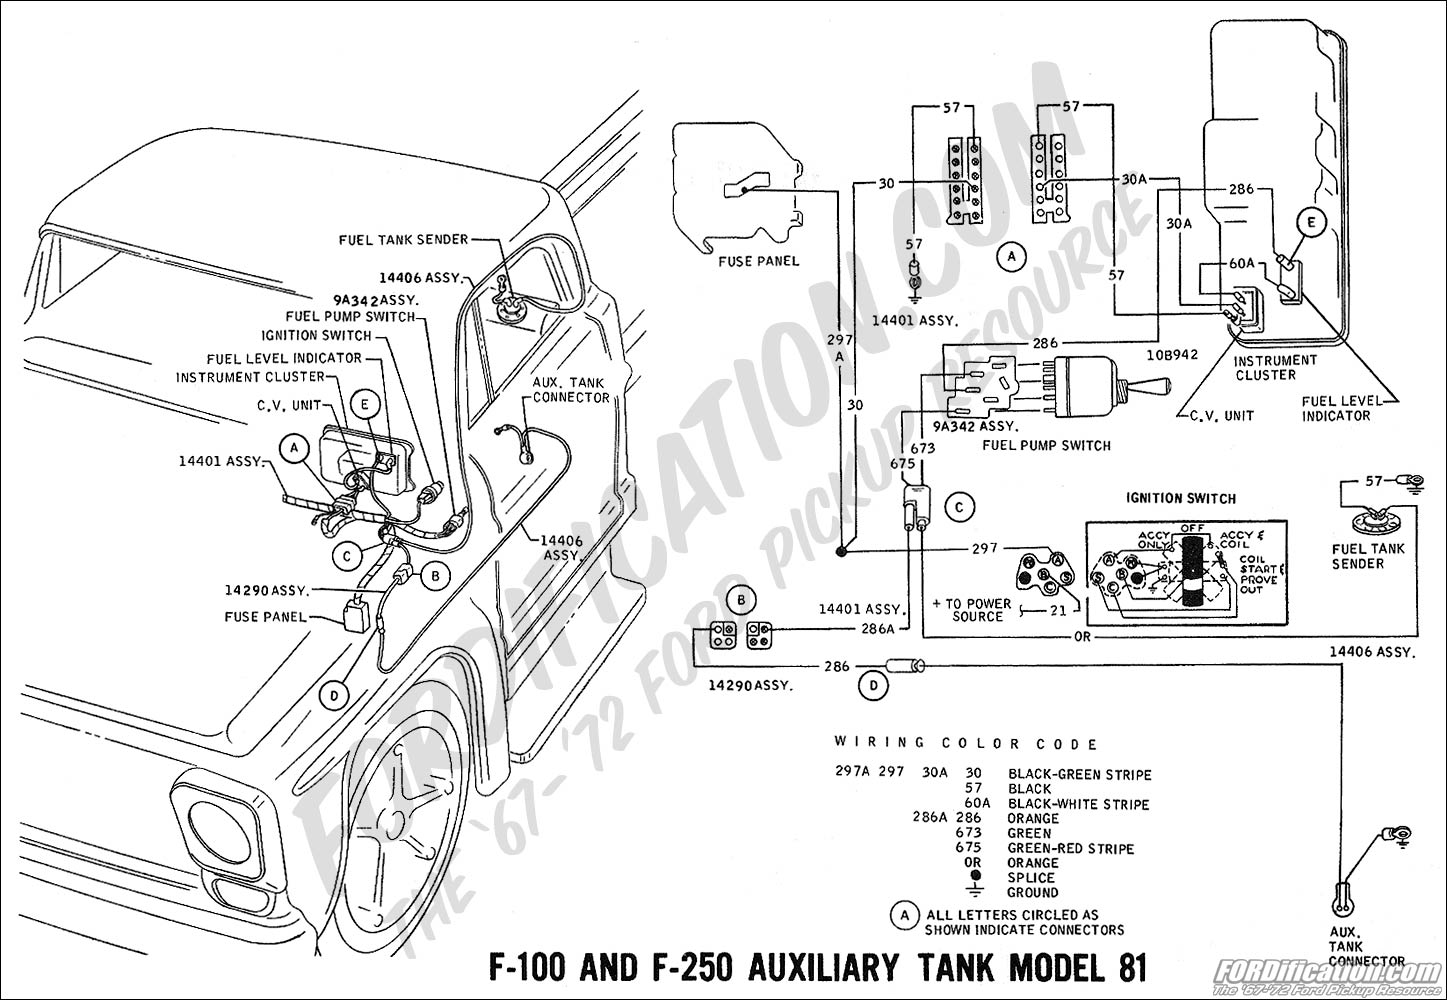 1966 Ford Truck Fuse Box Simple Guide About Wiring Diagram 1978 Technical Drawings And Schematics Section H